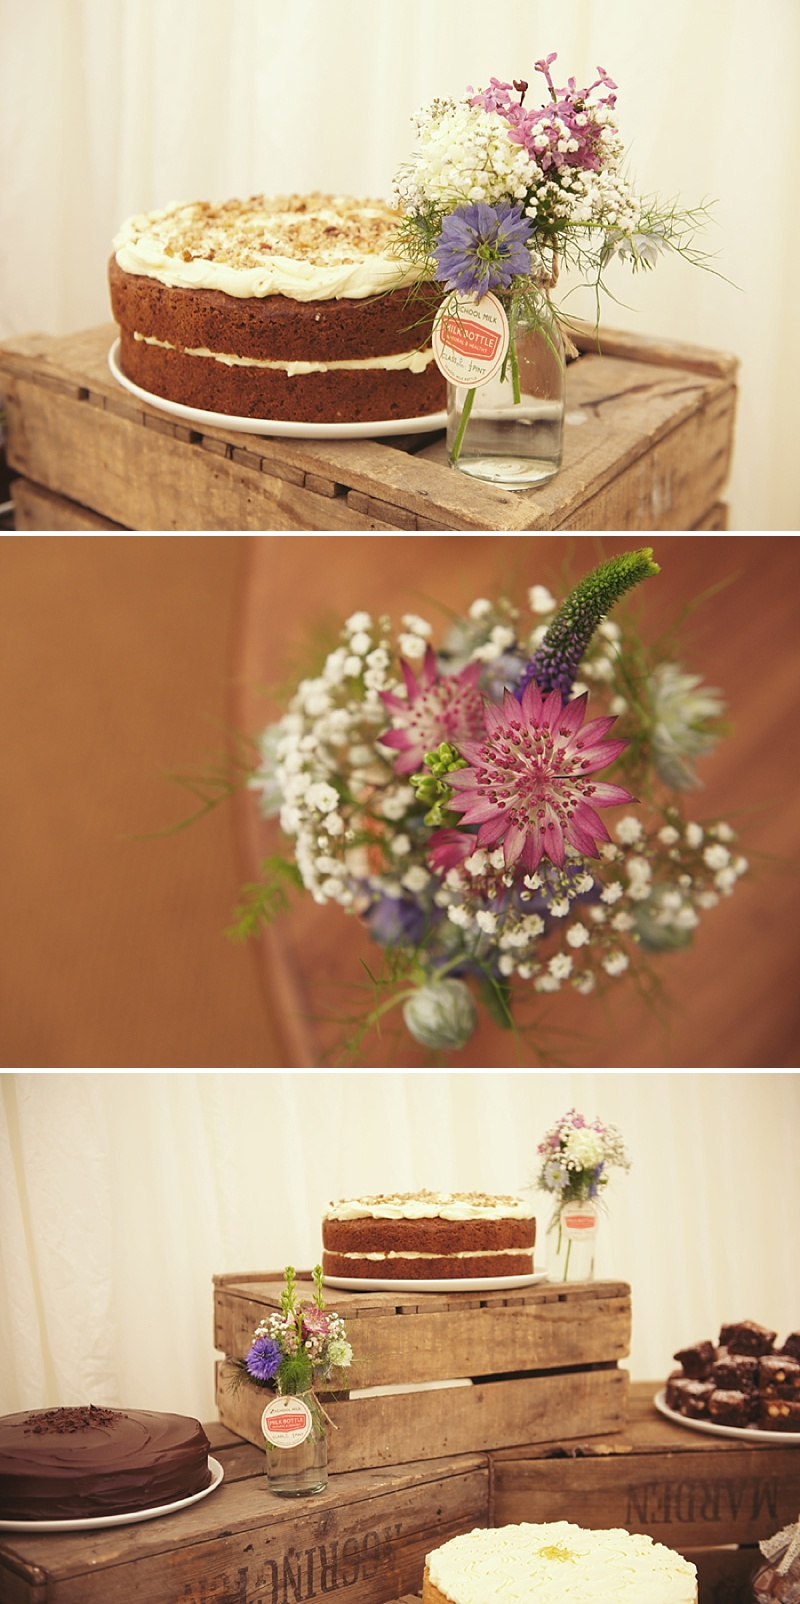 Garden Party Theme Archives - ROCK MY WEDDING | UK WEDDING BLOG ...